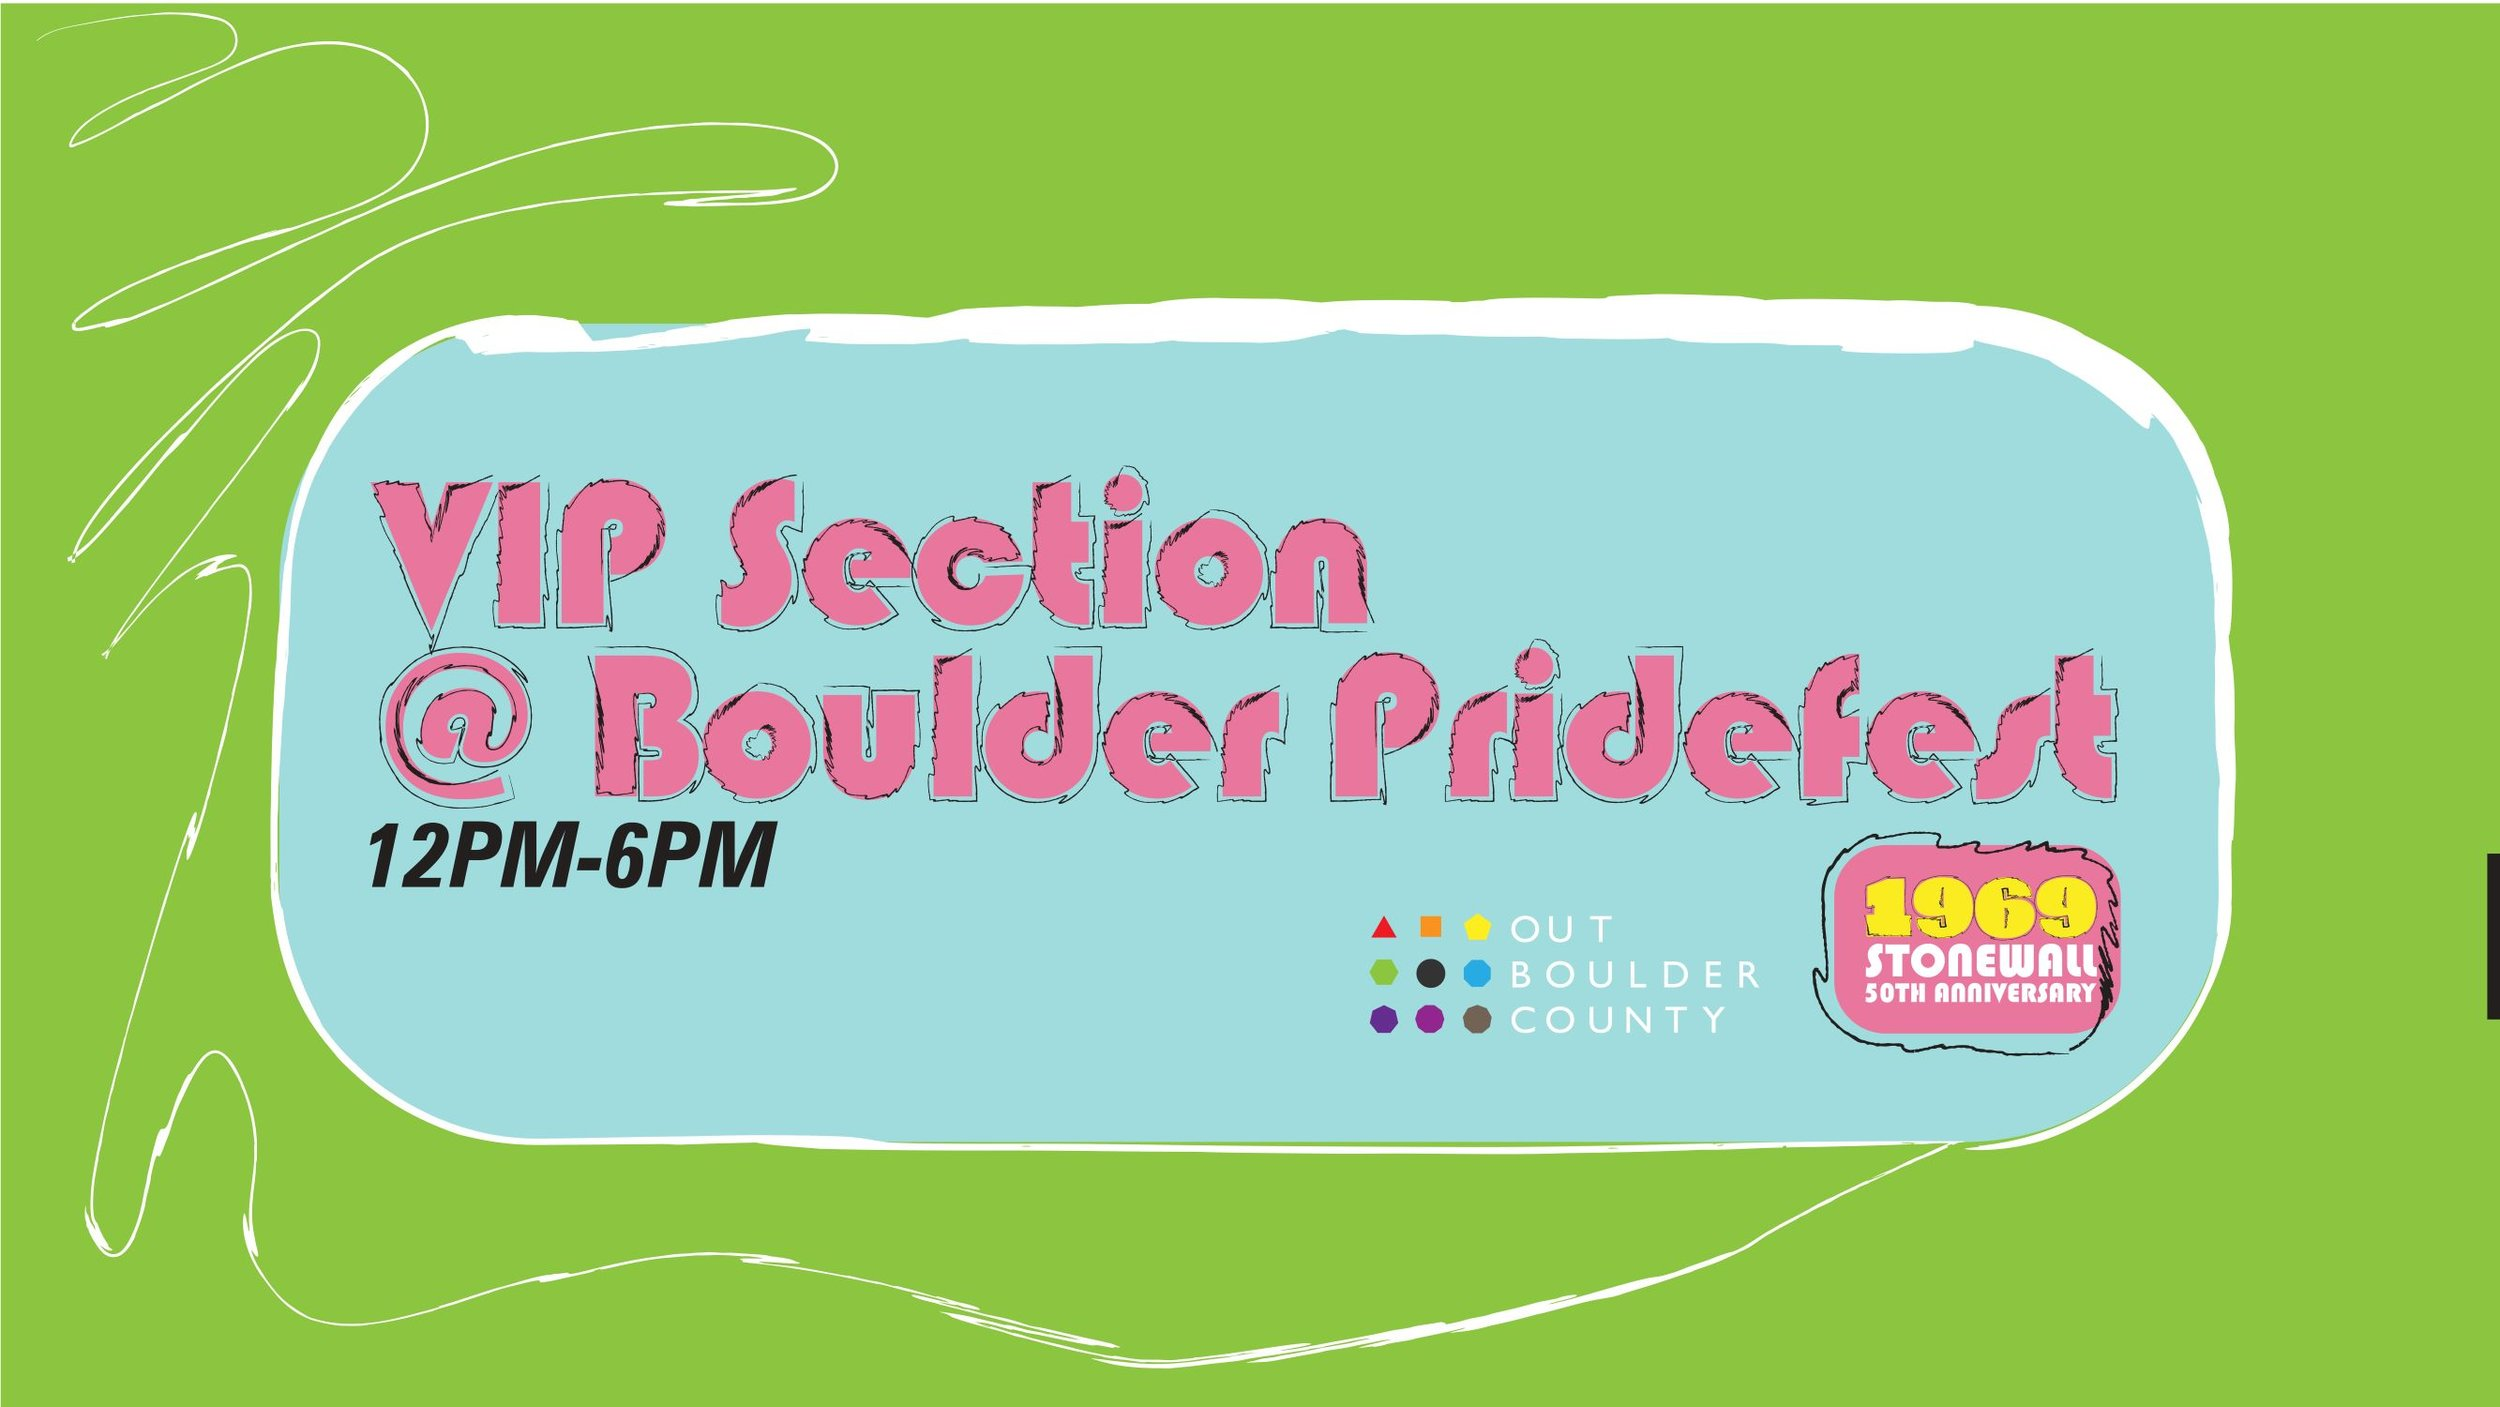 VIP Section at Boulder Pridefest  Sunday, September 8th, 12-6 pm Central Park, Boulder  Click here to see this event on our website.   Click here to see this event on Facebook.